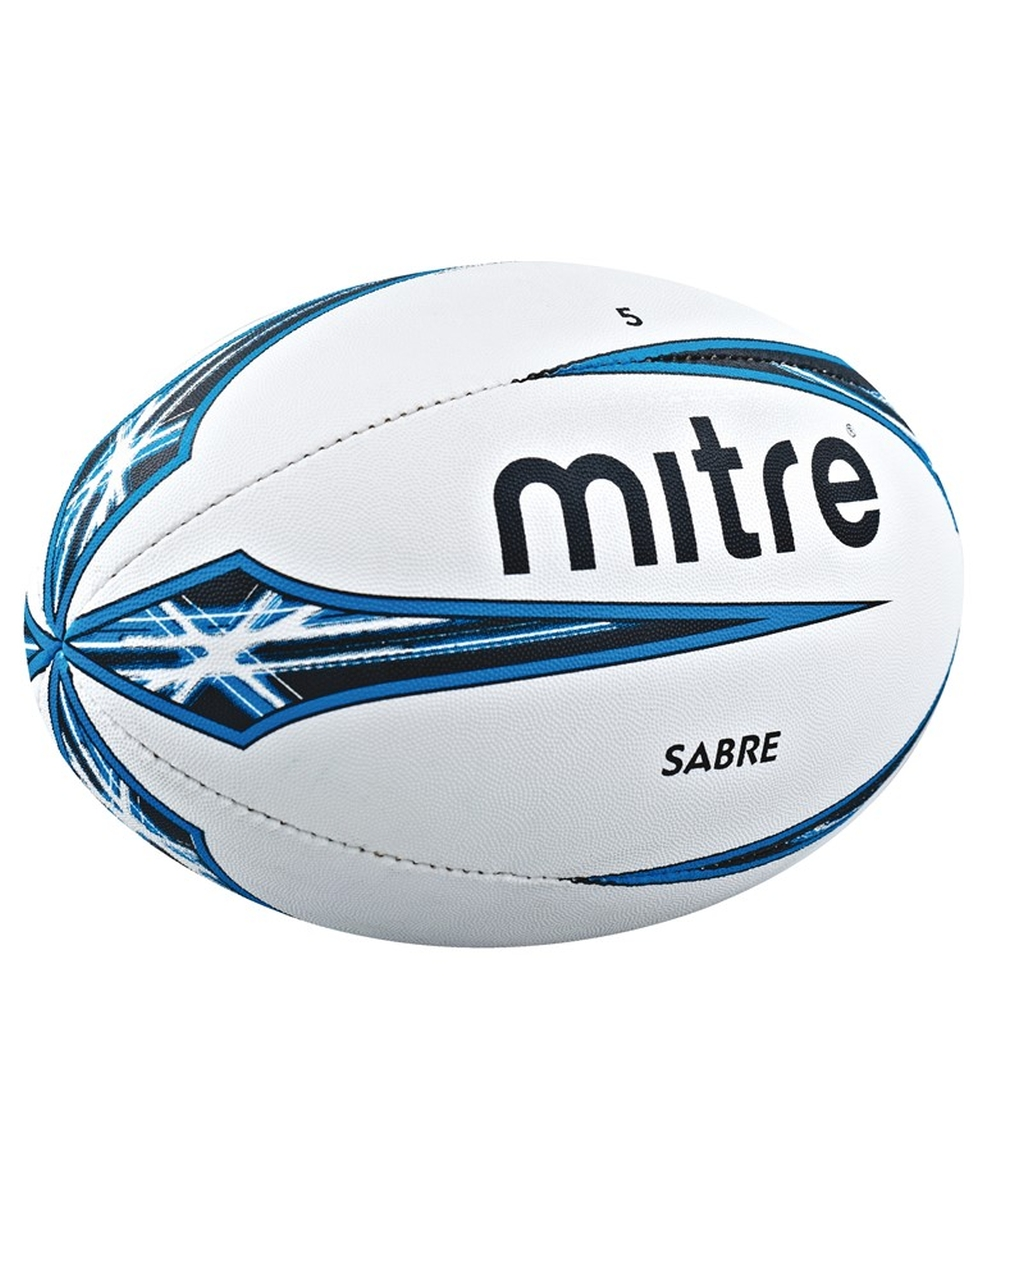 Mitre Sabre Rugby Ball Size 4